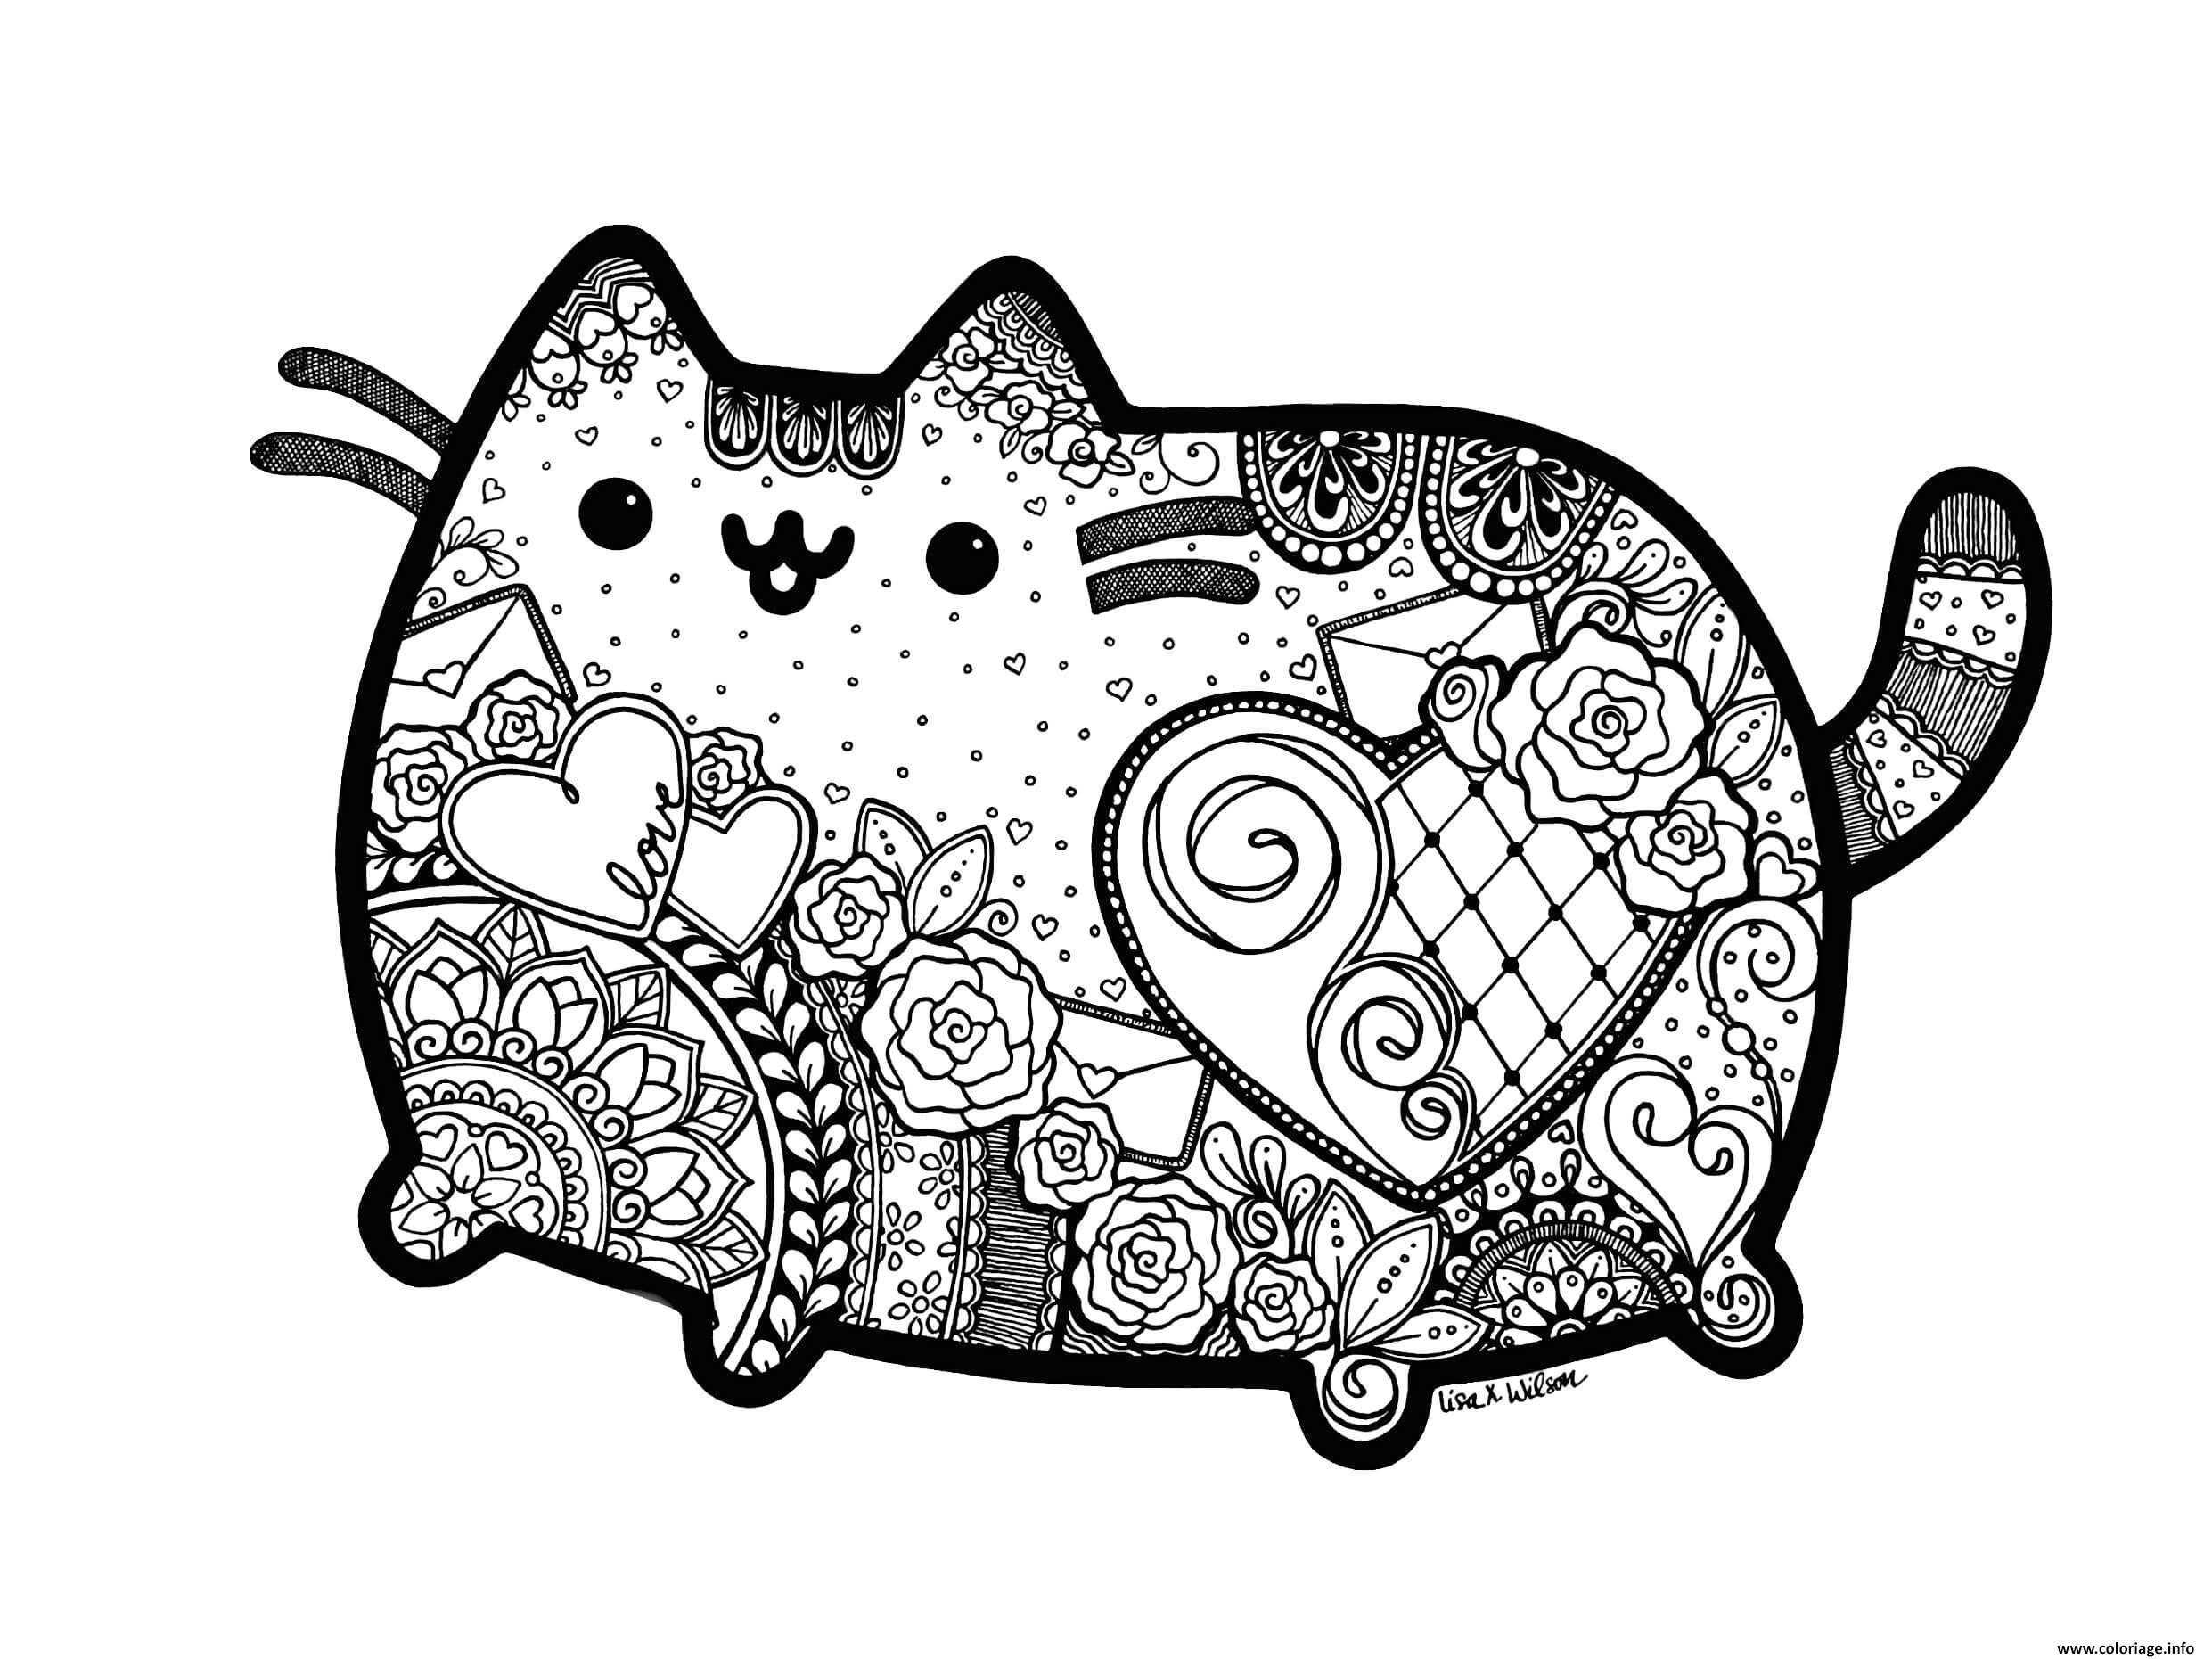 Nyan Cat Coloring Pages - GetColoringPages.com | 1861x2482